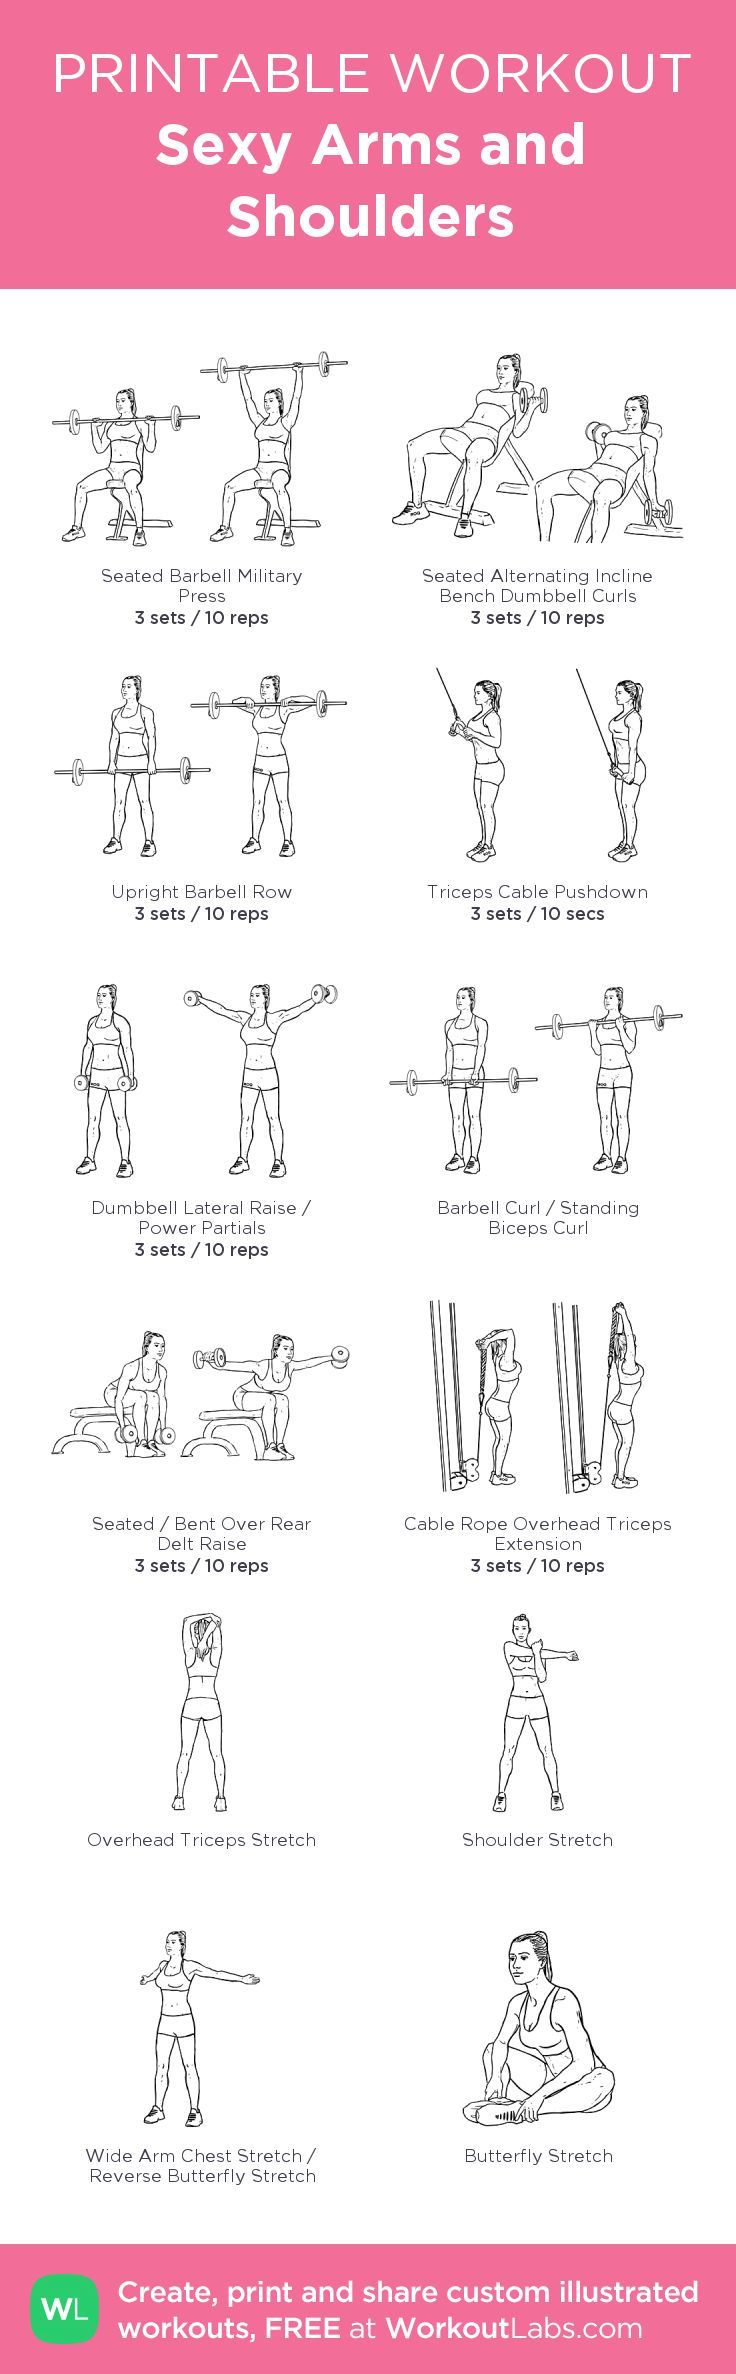 Sexy Arms and Shoulders: my visual workout created at WorkoutLabs.com • Click through to customize and download as a FREE PDF! #customworkout